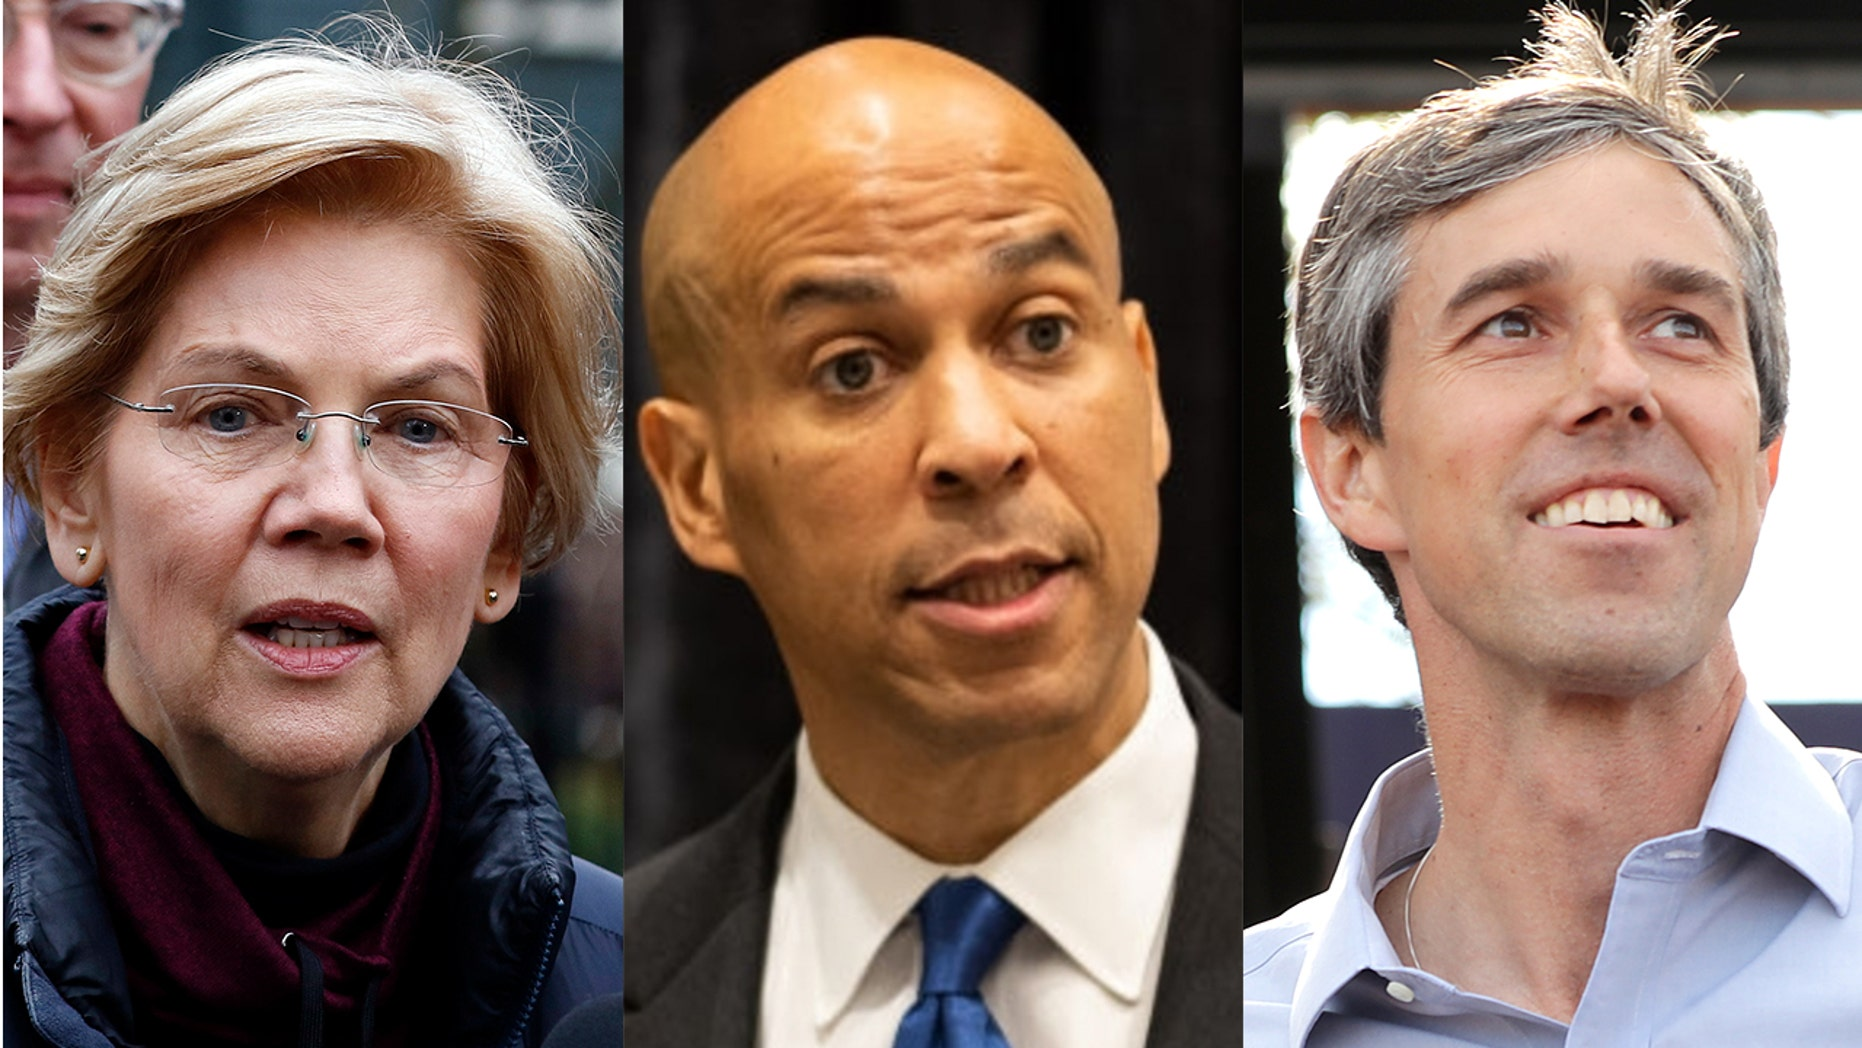 Sen. Elizabeth Warren, Sen. Cory Booker, and Beto O'Rourke have indicated support for the Green New Deal.